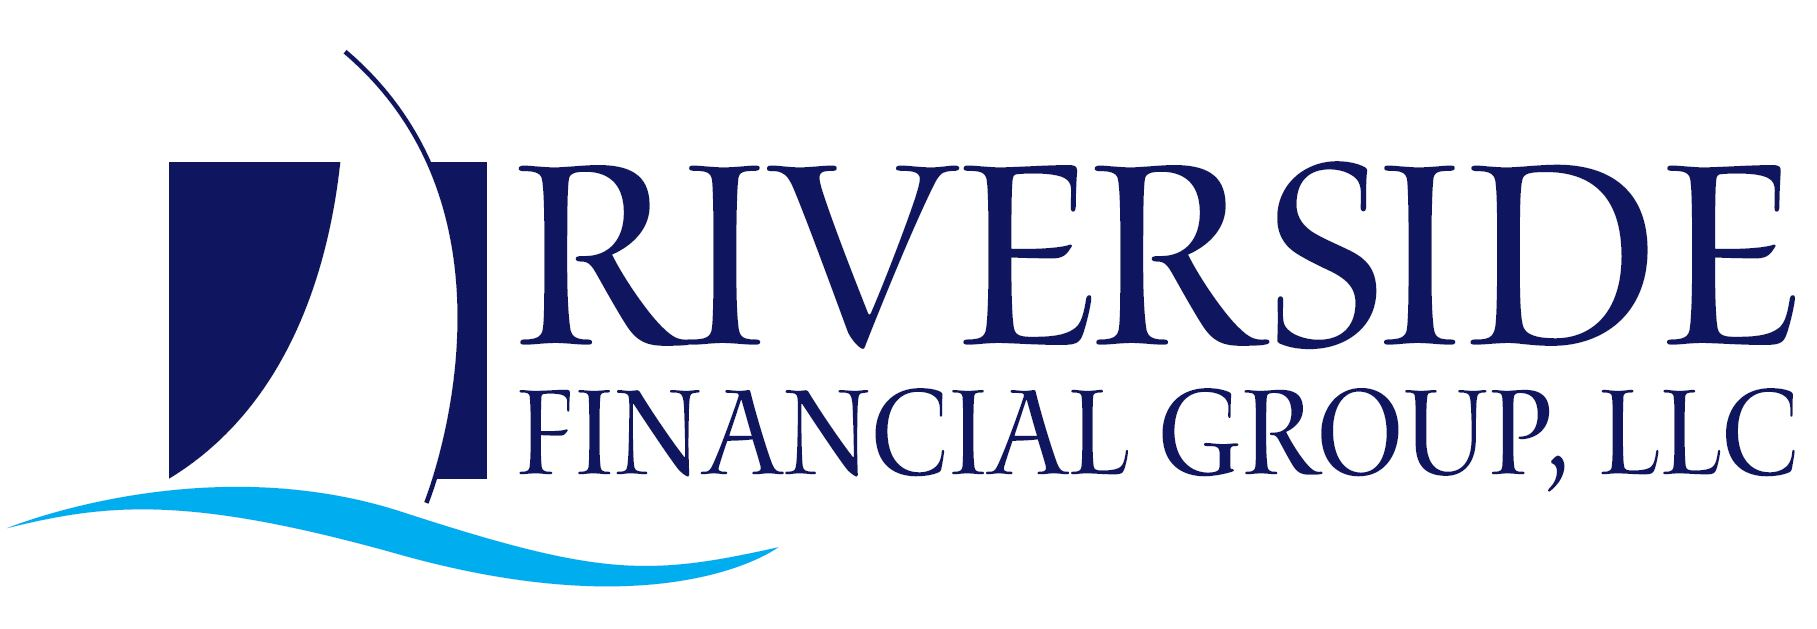 Riverside Financial Group, LLC